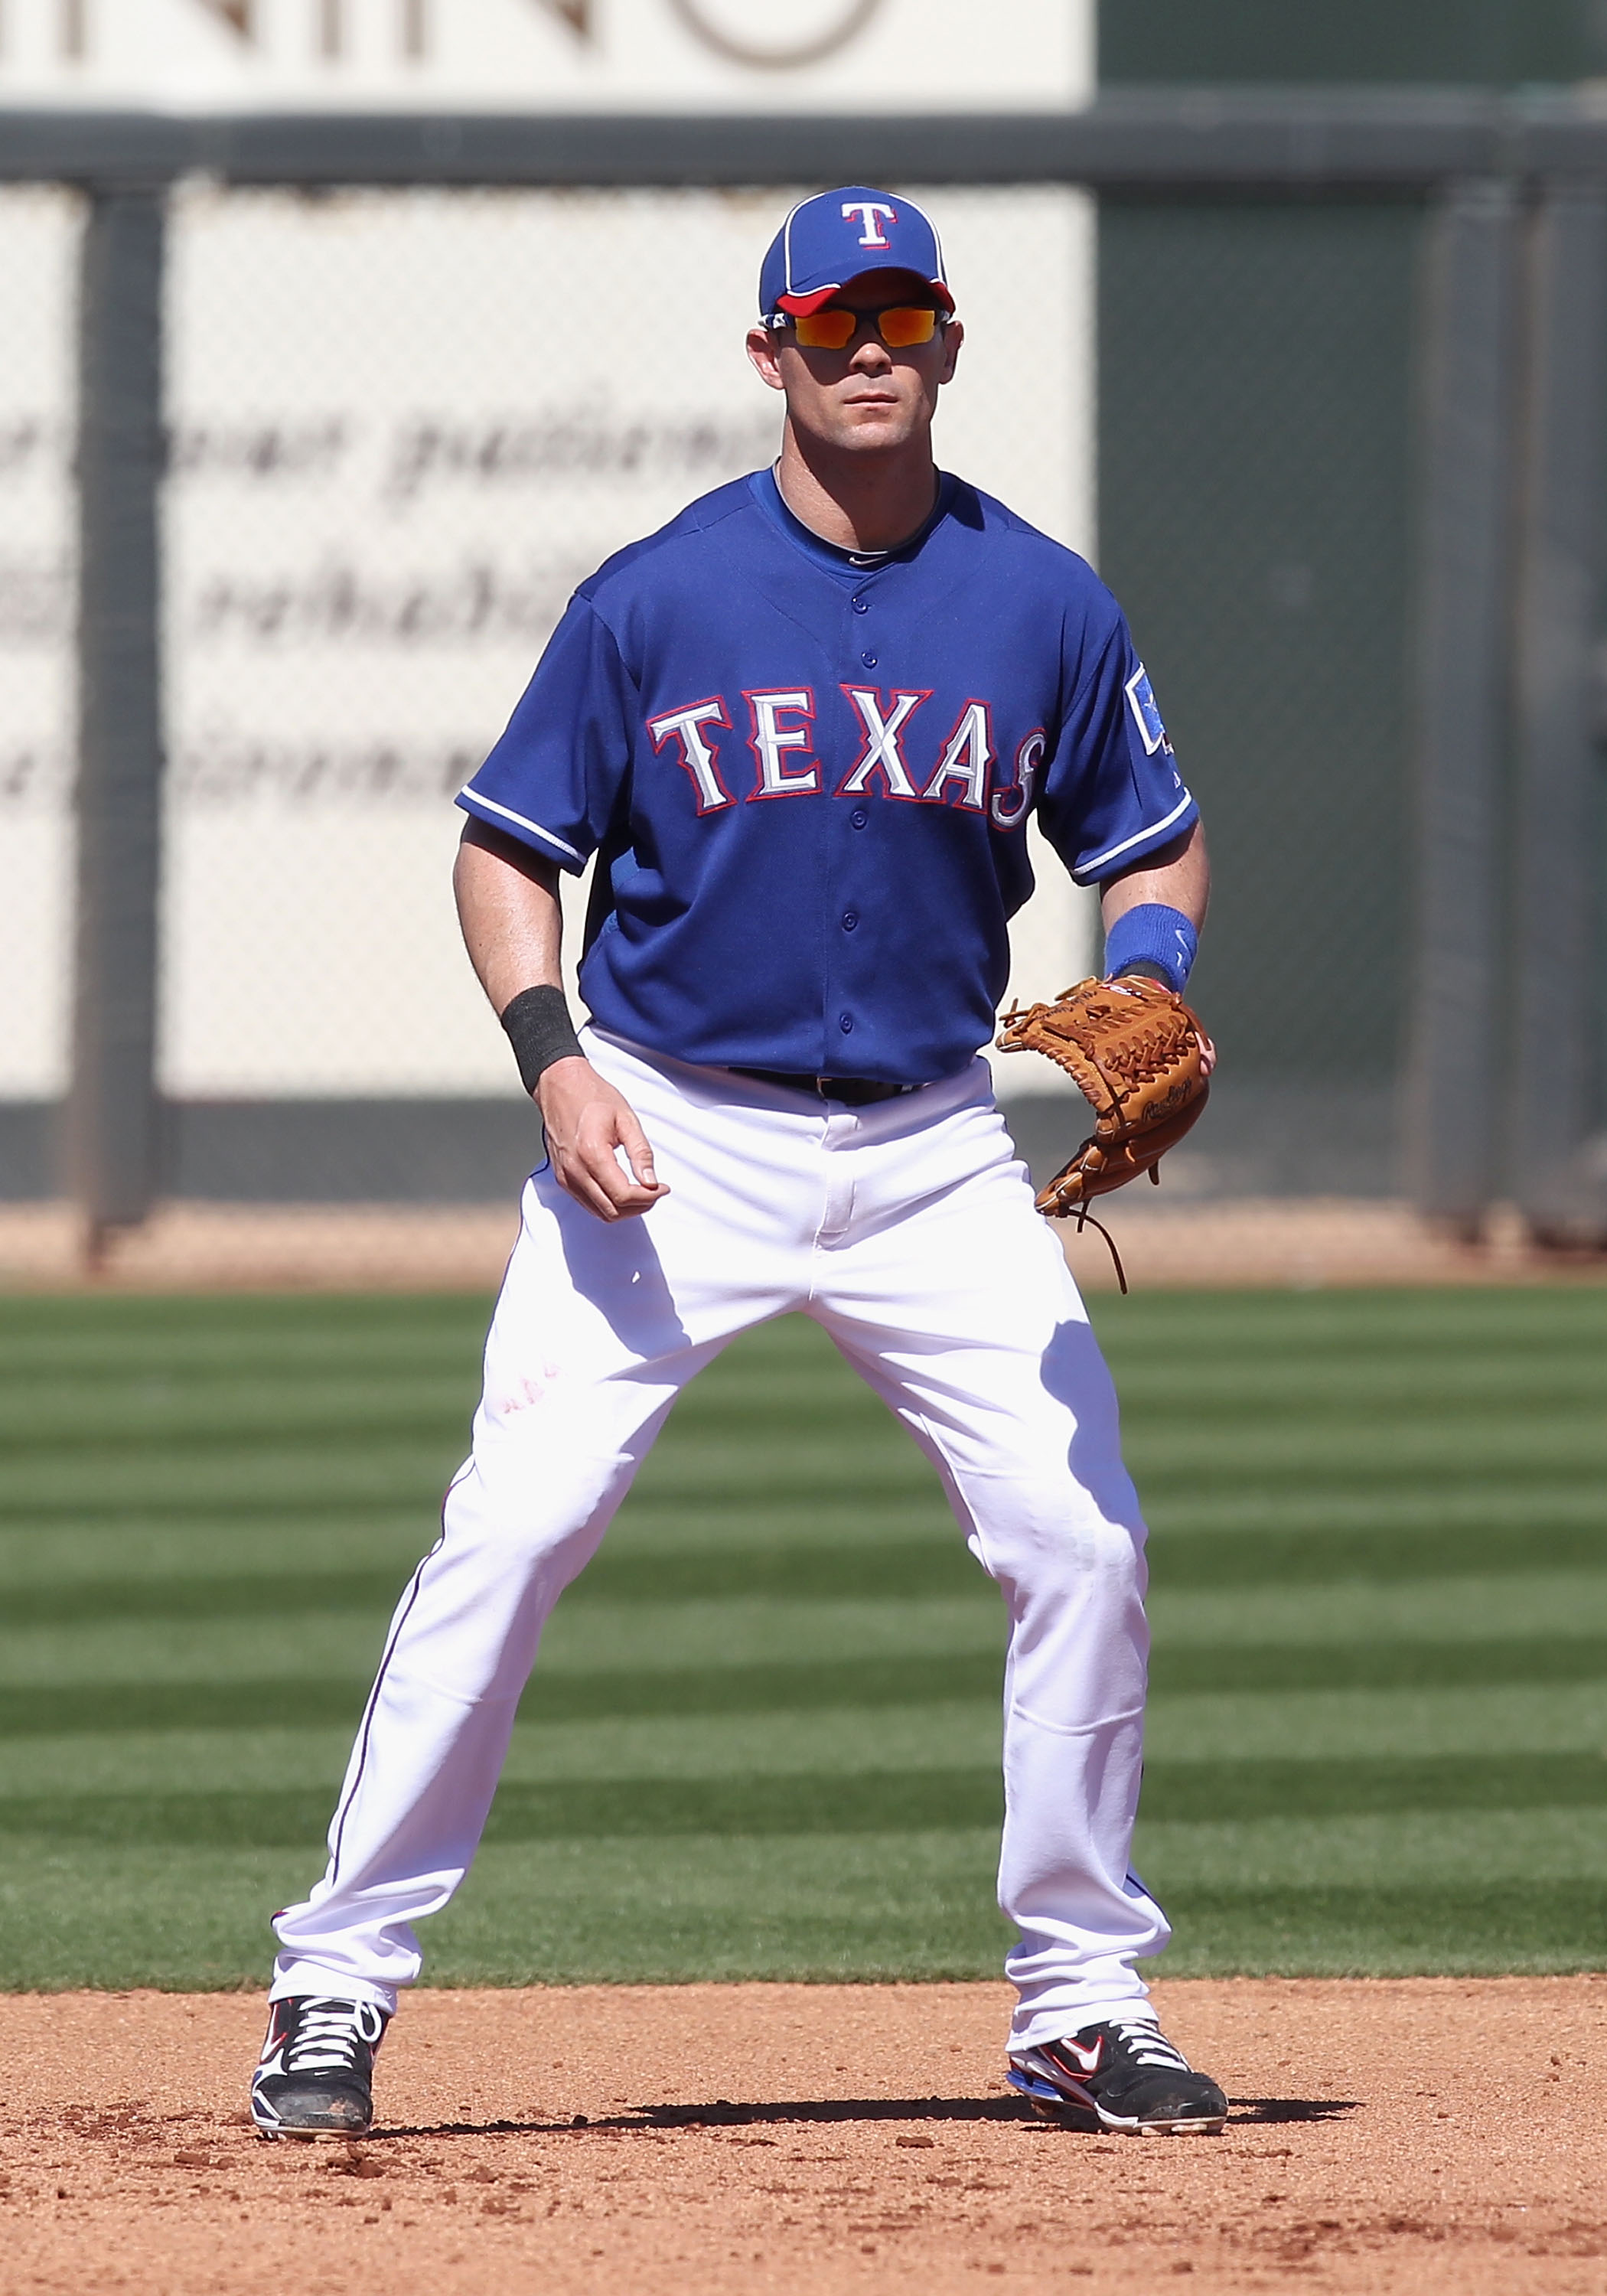 SURPRISE, AZ - MARCH 02:  Infielder Michael Young #10 of the Texas Rangers during the spring training game against the Los Angeles Angels of Anaheim at Surprise Stadium on March 2, 2011 in Surprise, Arizona.  (Photo by Christian Petersen/Getty Images)